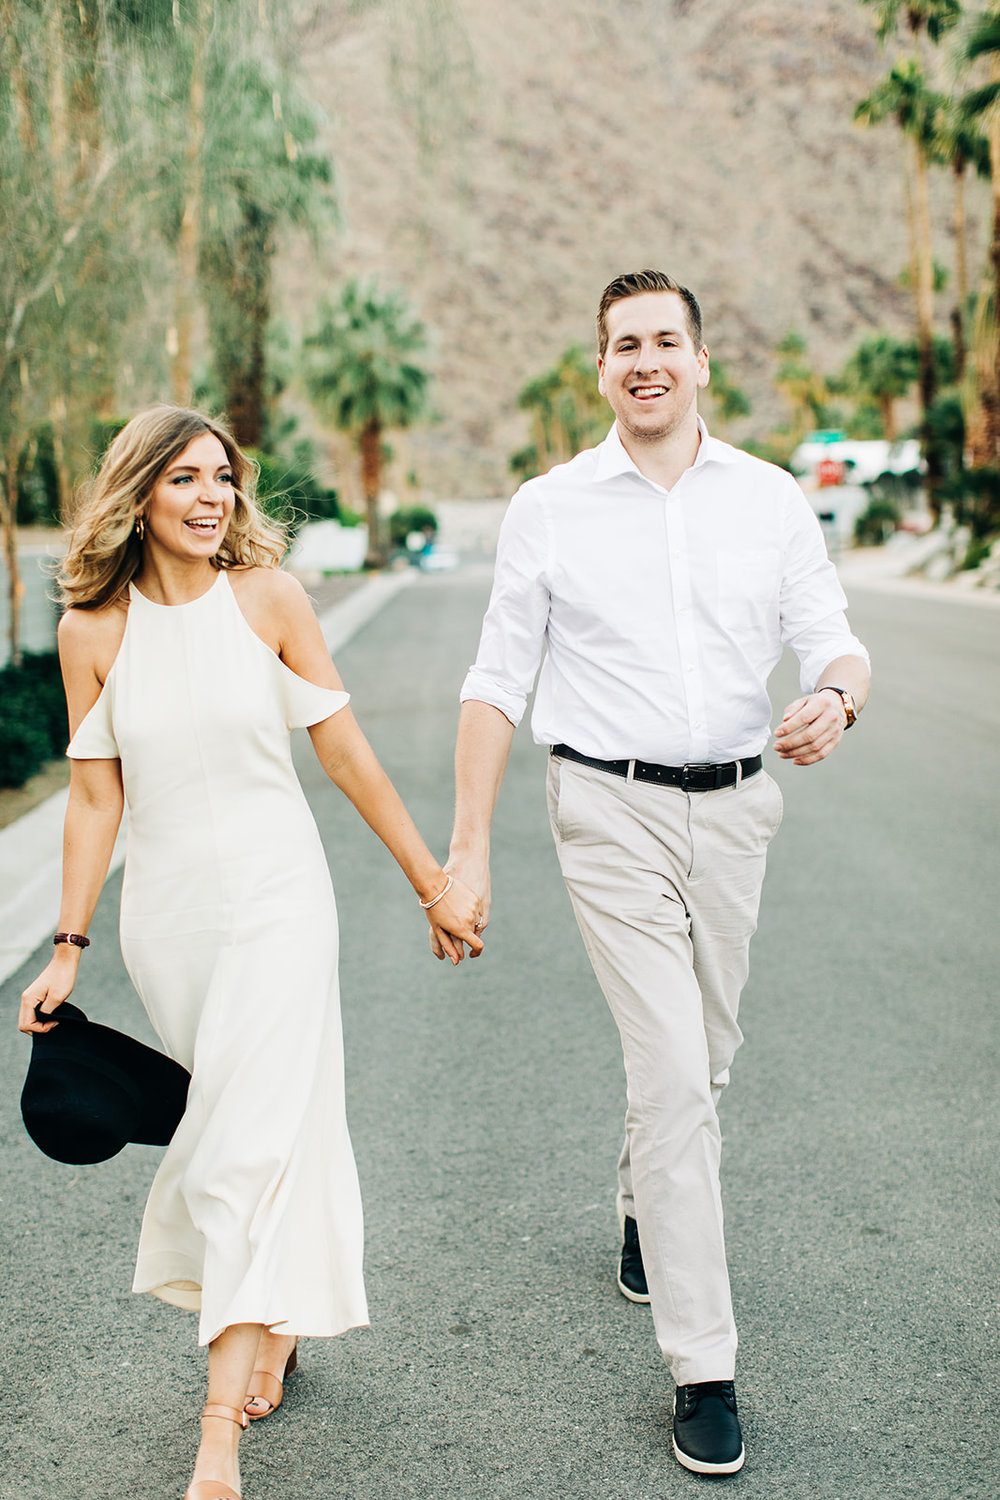 Paulina-Drew_Palm-Springs-Engagement-Photos_Clarisse-Rae_Southern-California-Wedding-Photographer-36